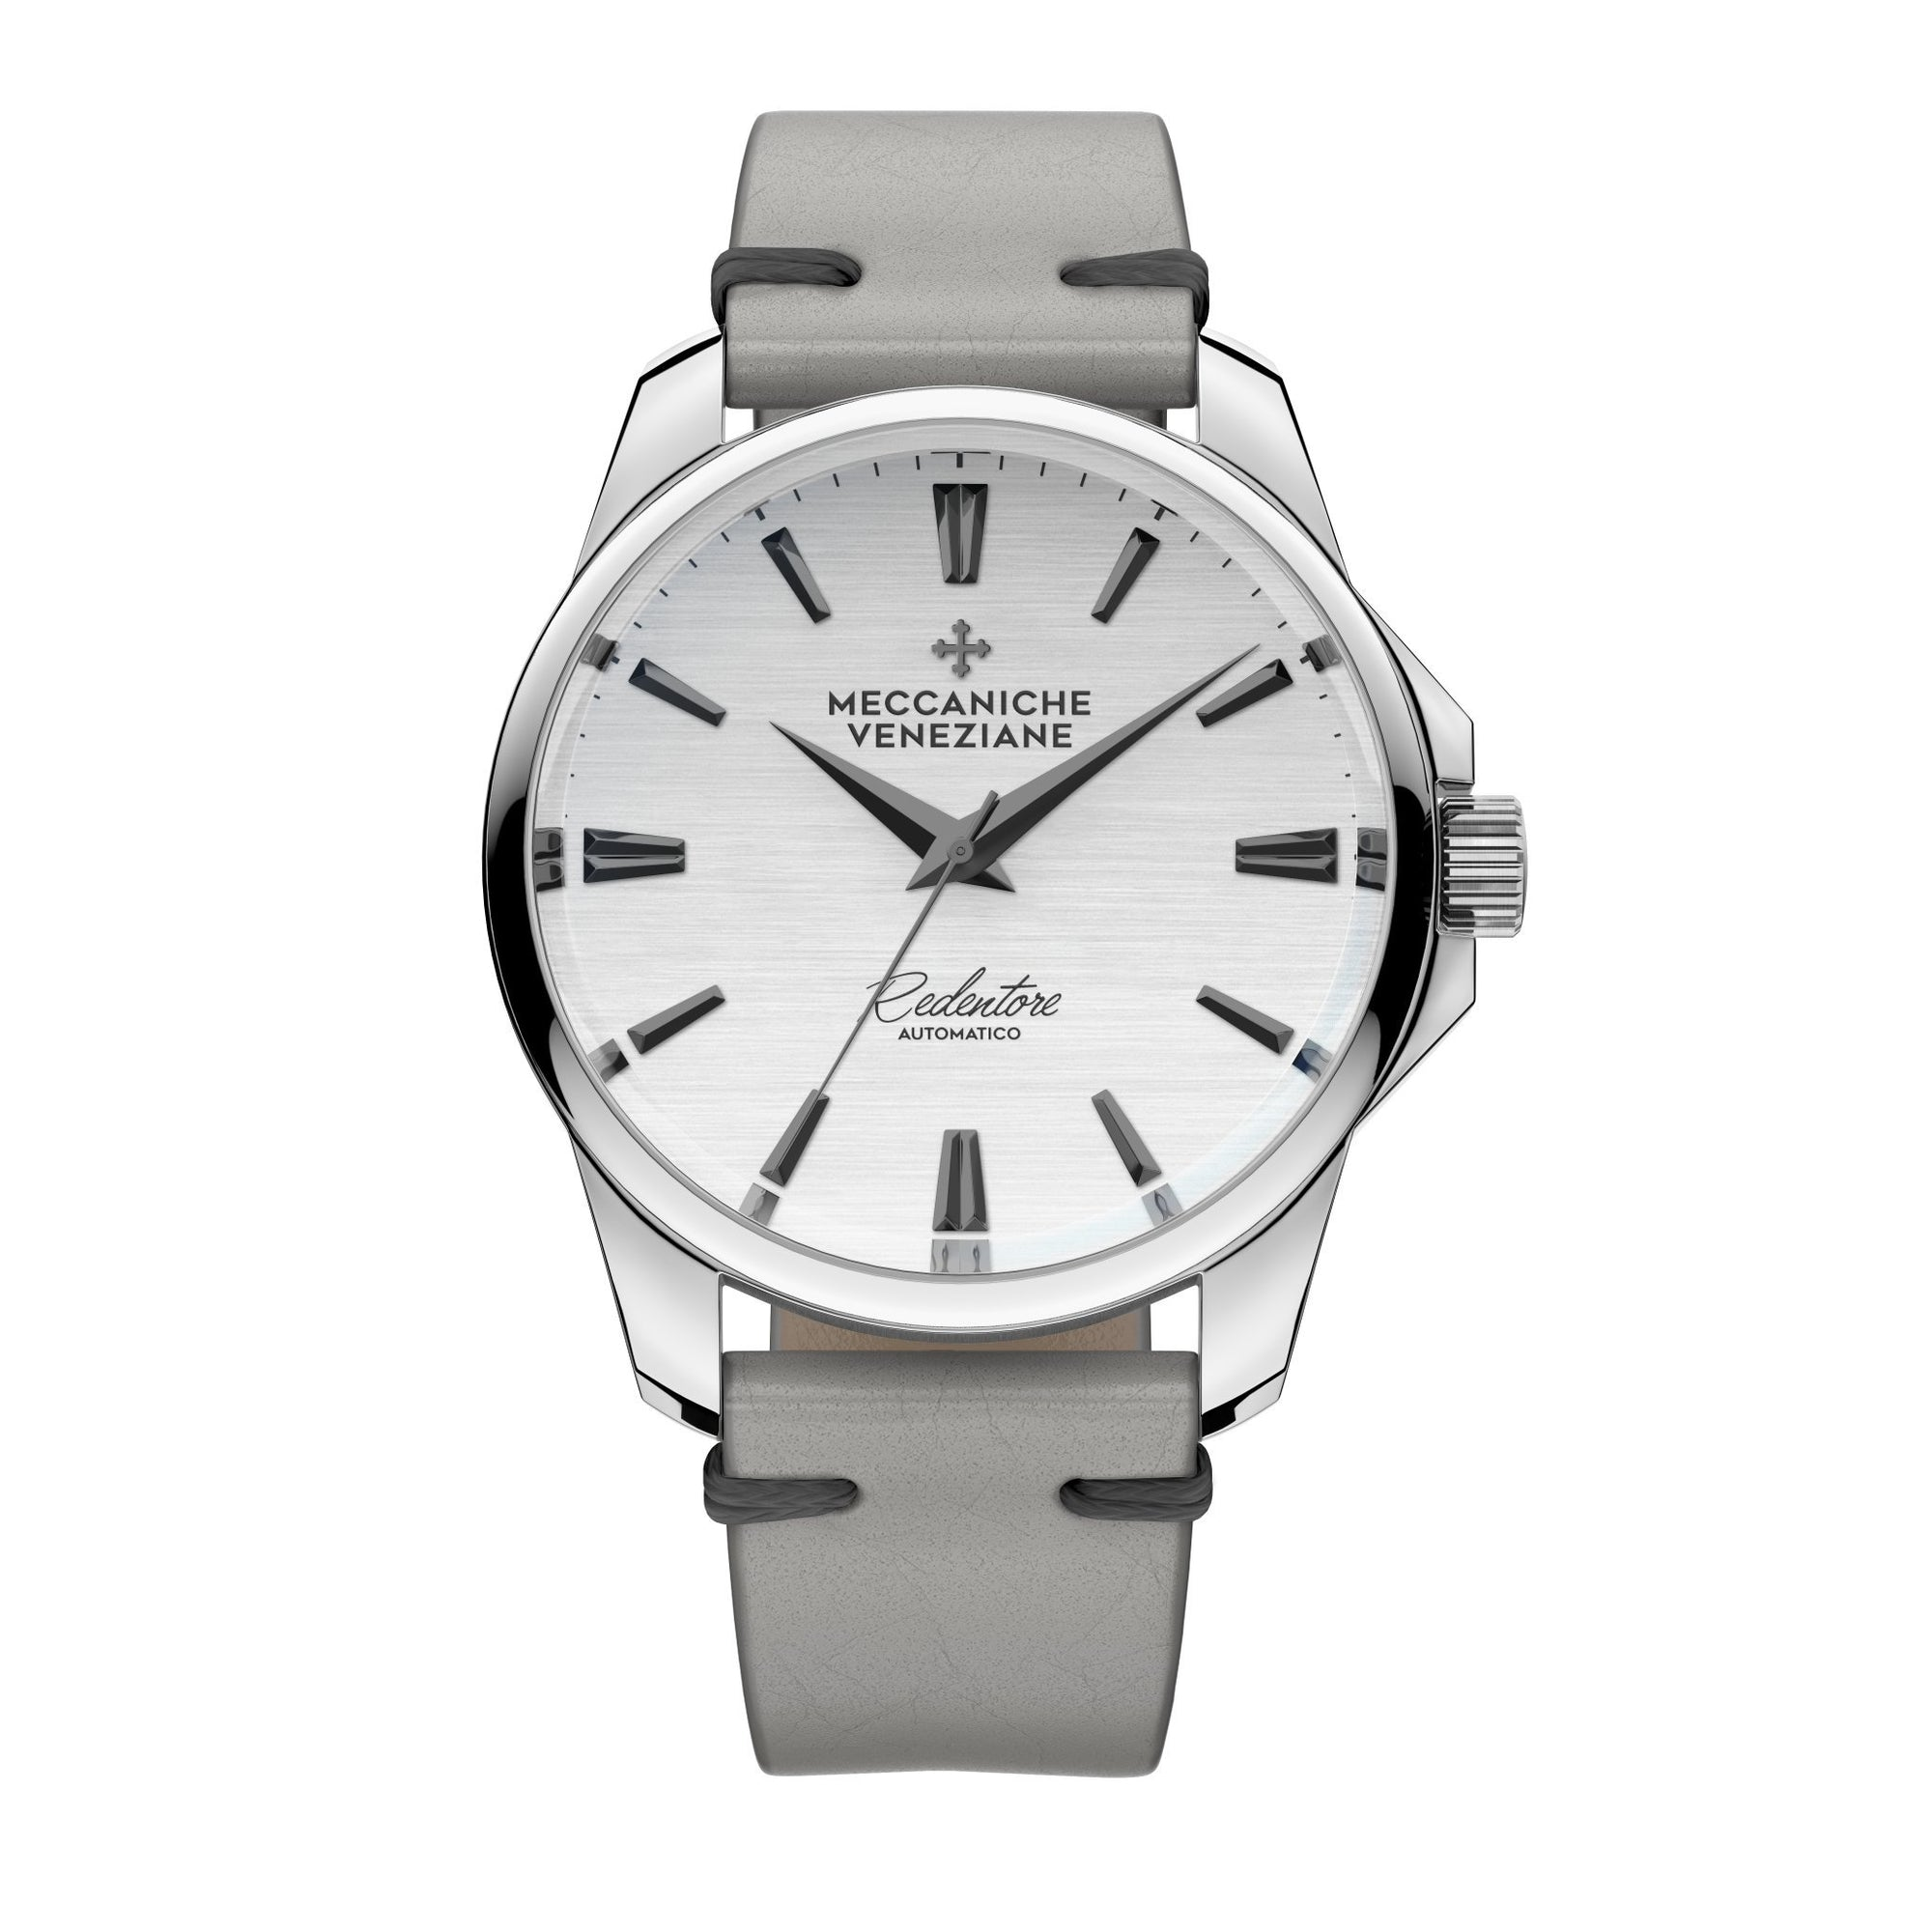 Meccaniche Veneziane Redentore Argento Grey - Watches & Crystals